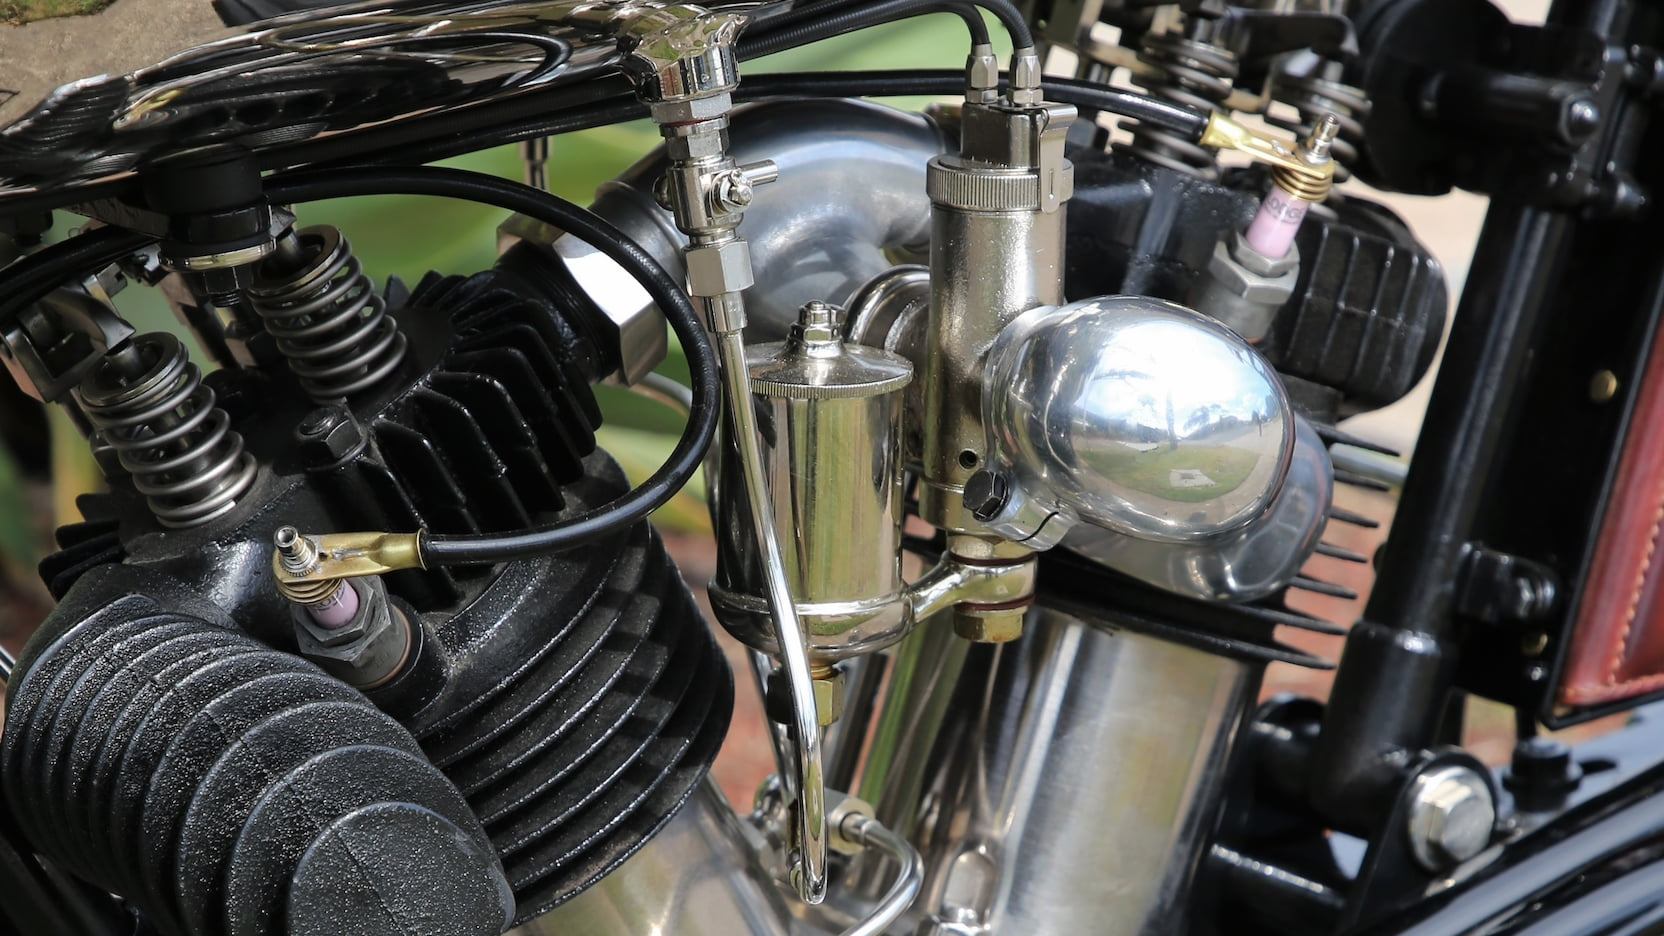 JAP engine Brough Superior